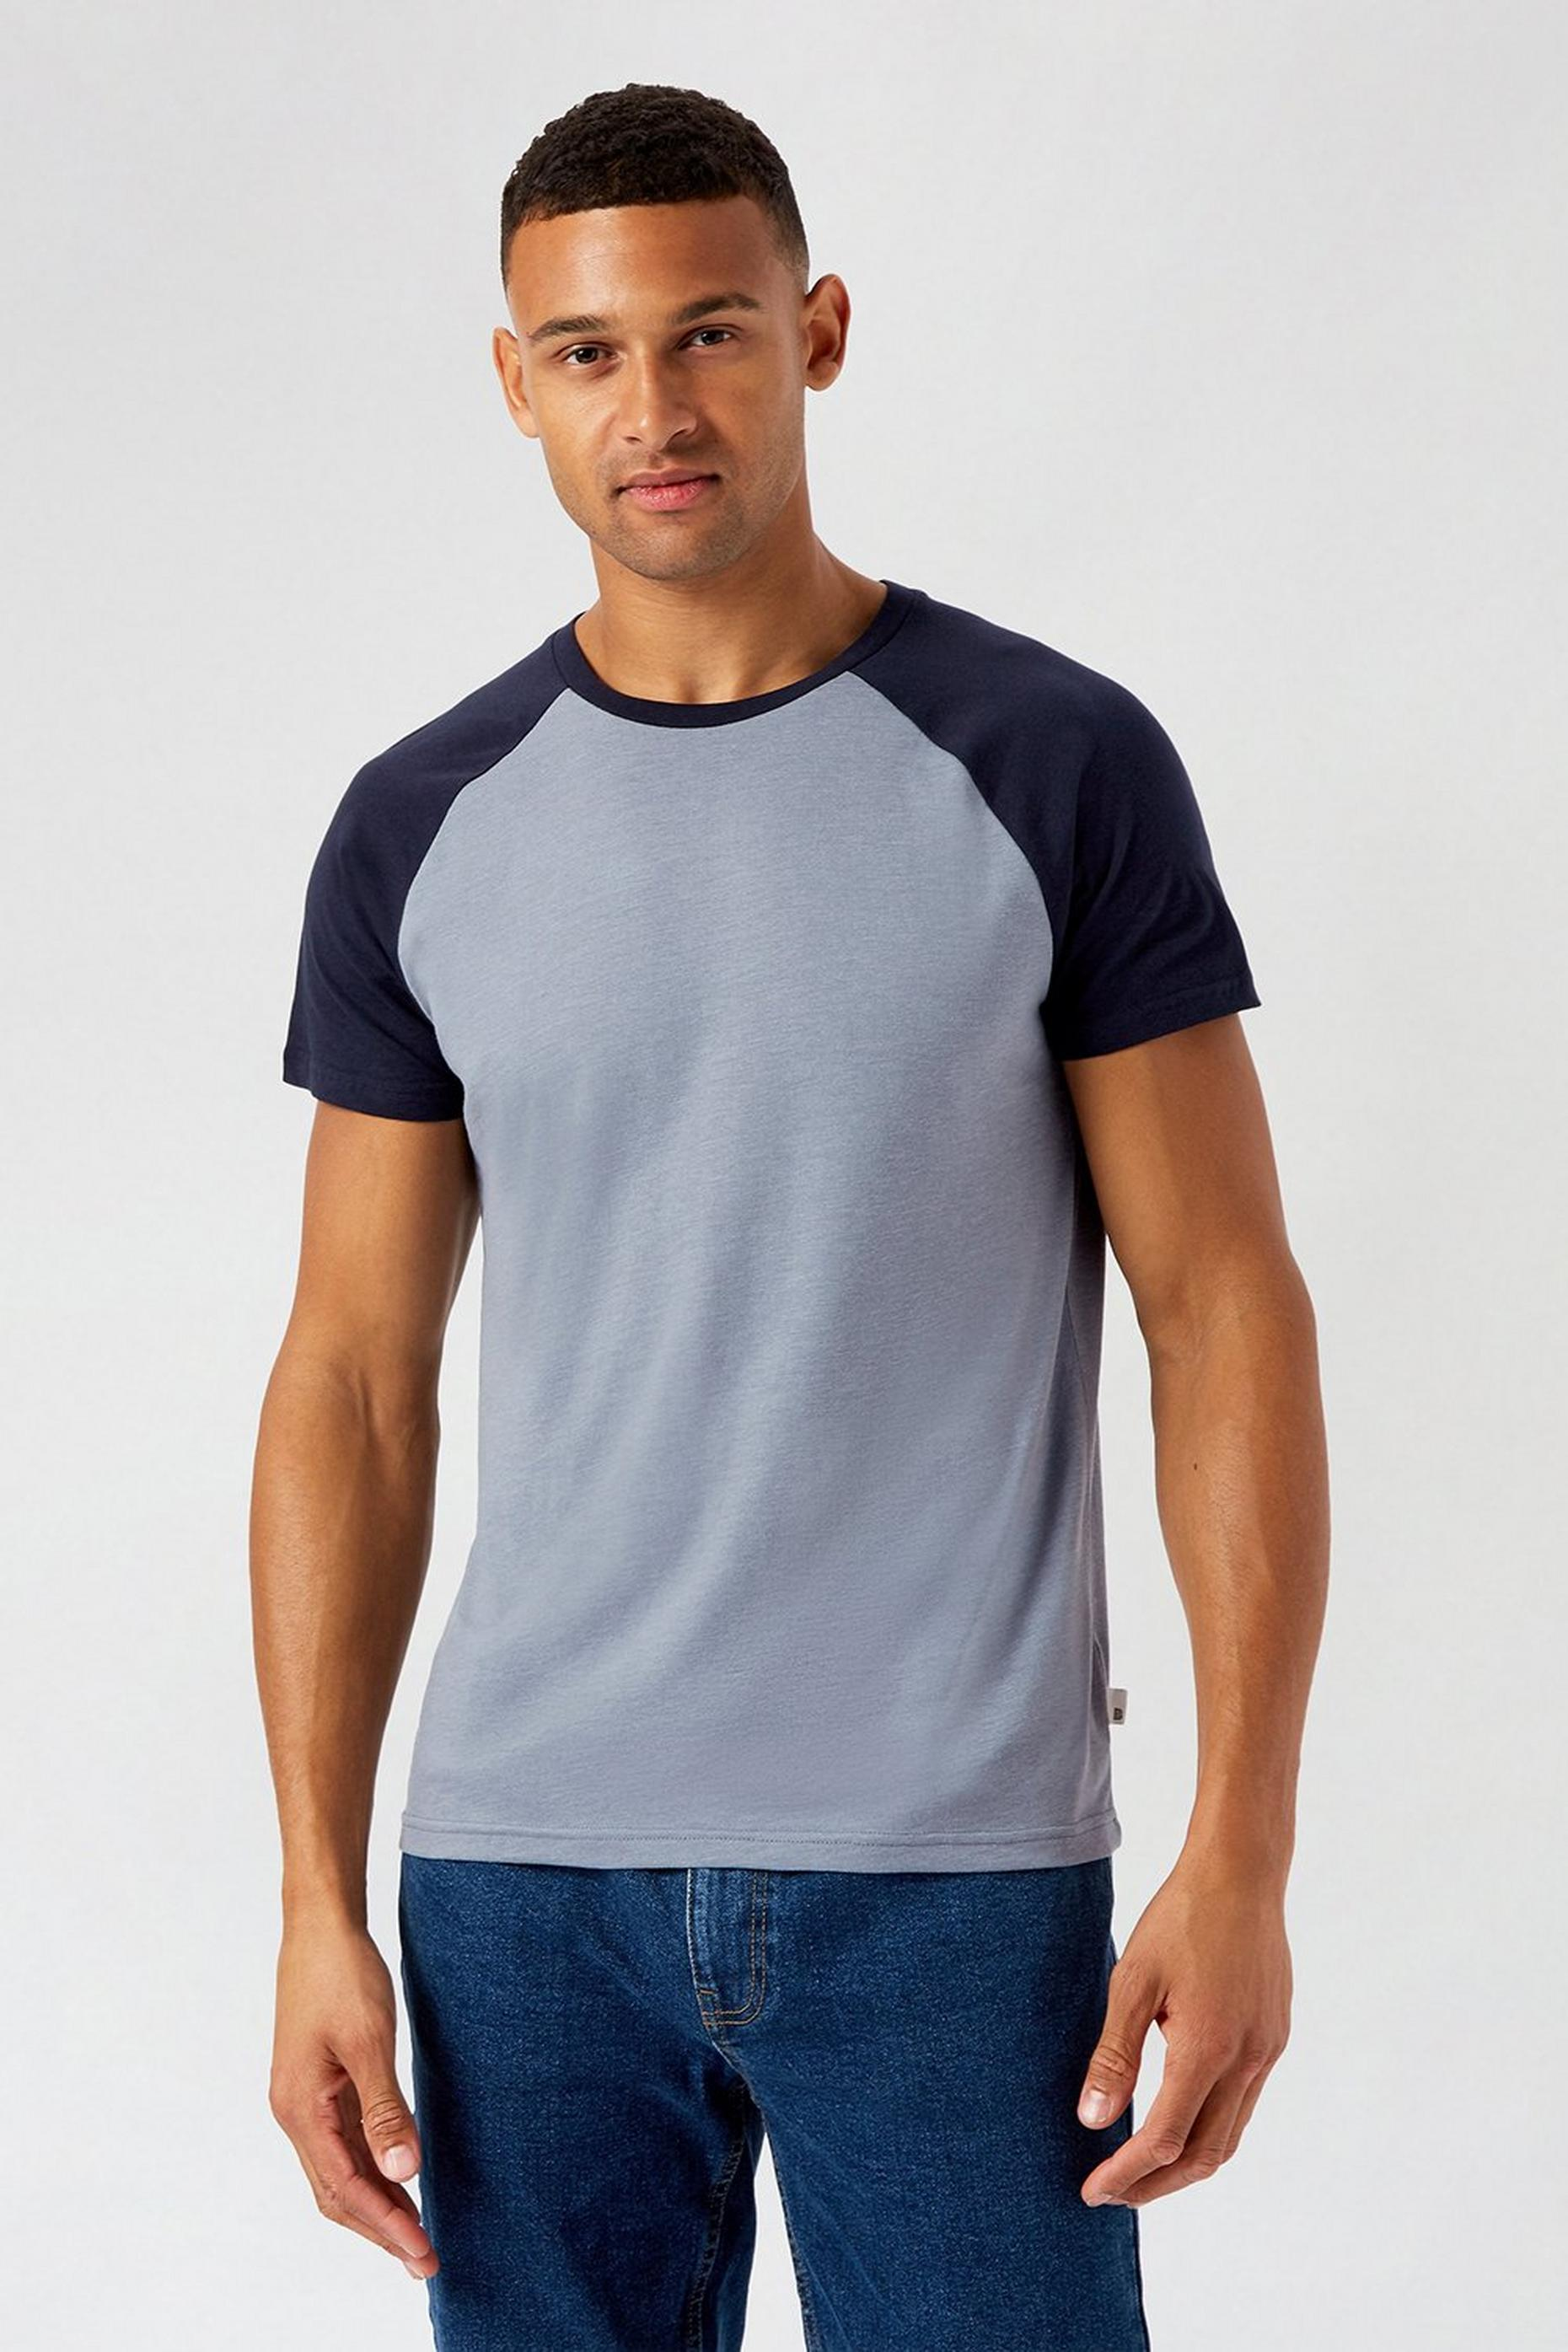 Blue and Navy Organic Raglan T Shirt